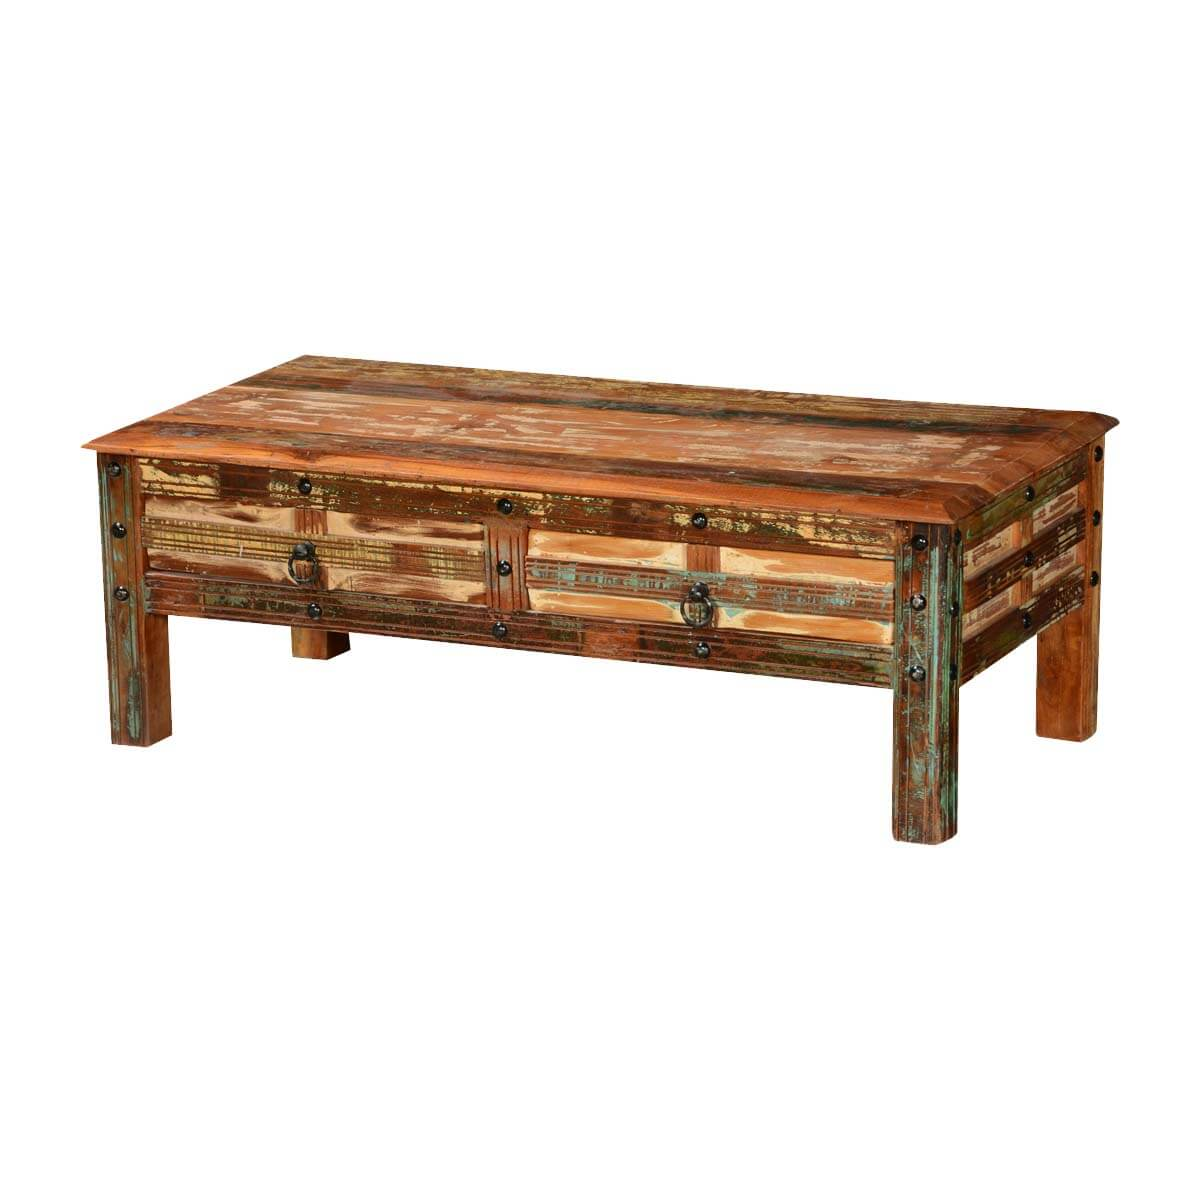 Pioneer rustic reclaimed wood 2 drawer coffee table for Reclaimed teak wood coffee table